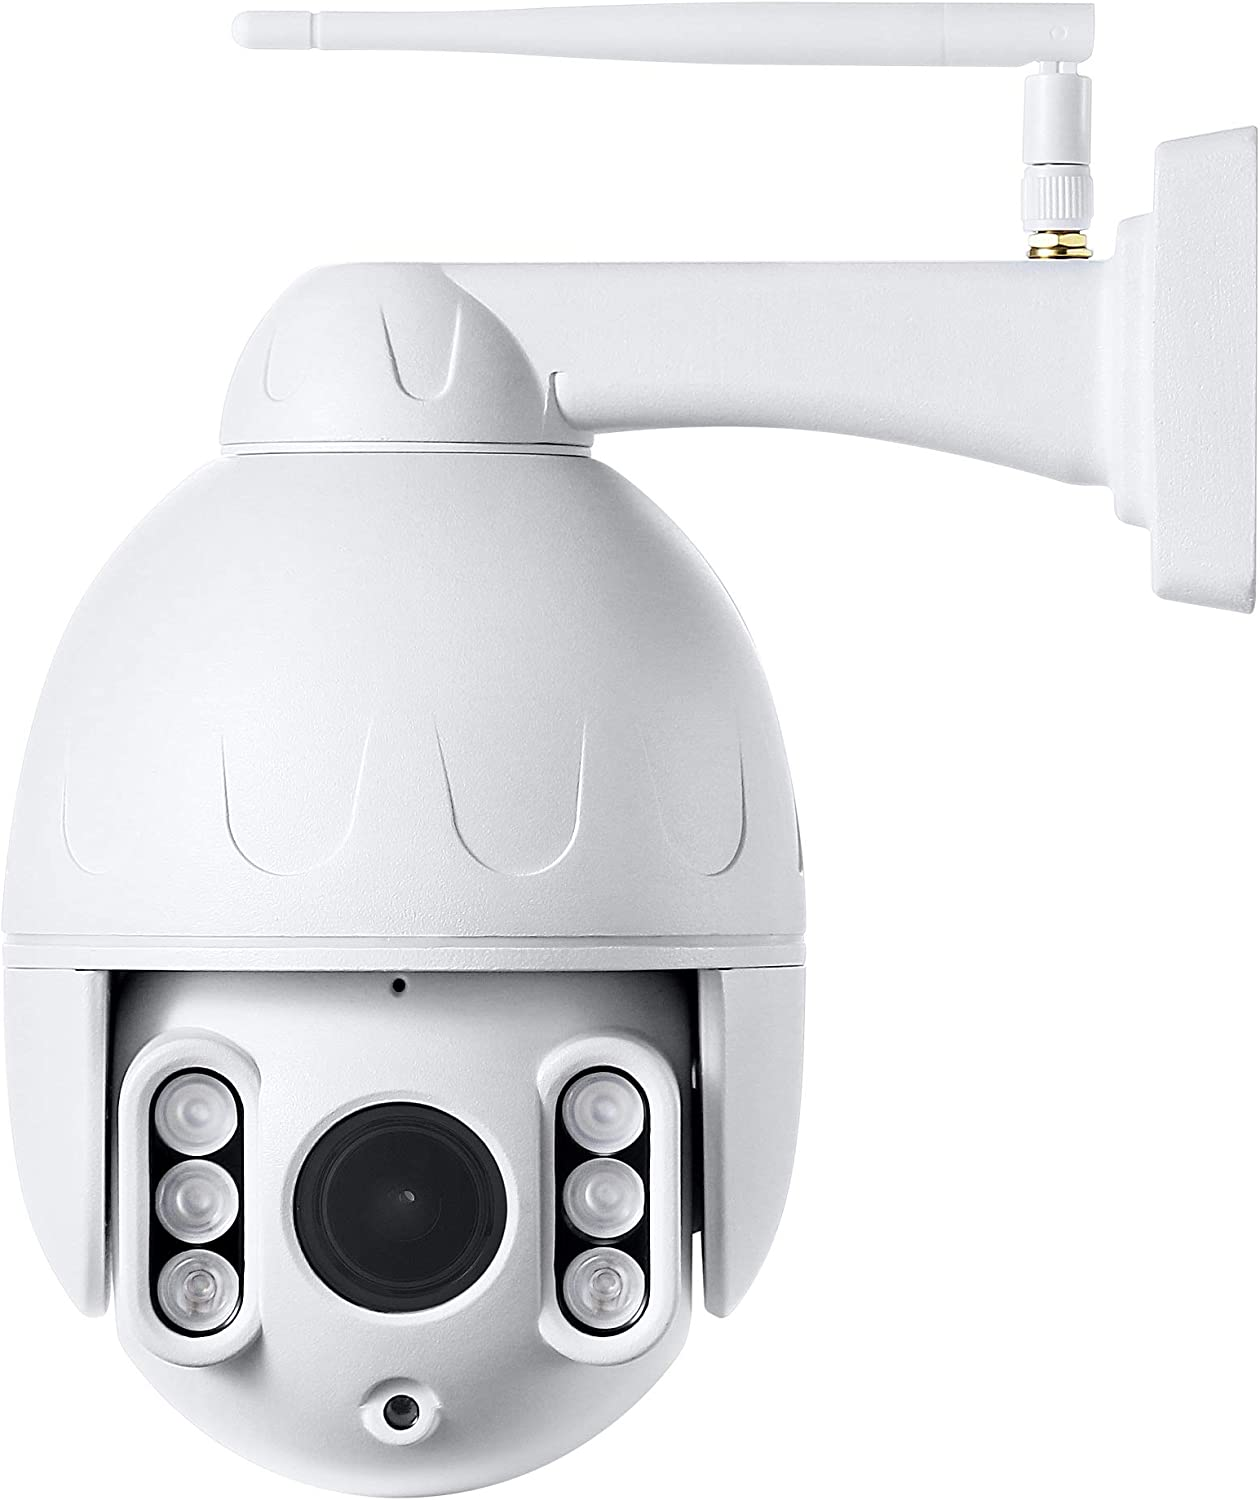 Outdoor PTZ 2.4G WiFi Security Camera Wireless Surveillance HD 1080P Pan Tilt Zoom 5X Optical 165ft Night Vision Two-Way Audio IP66 Weatherproof Motion Detection E-Mail Push Alerts AT-200PW